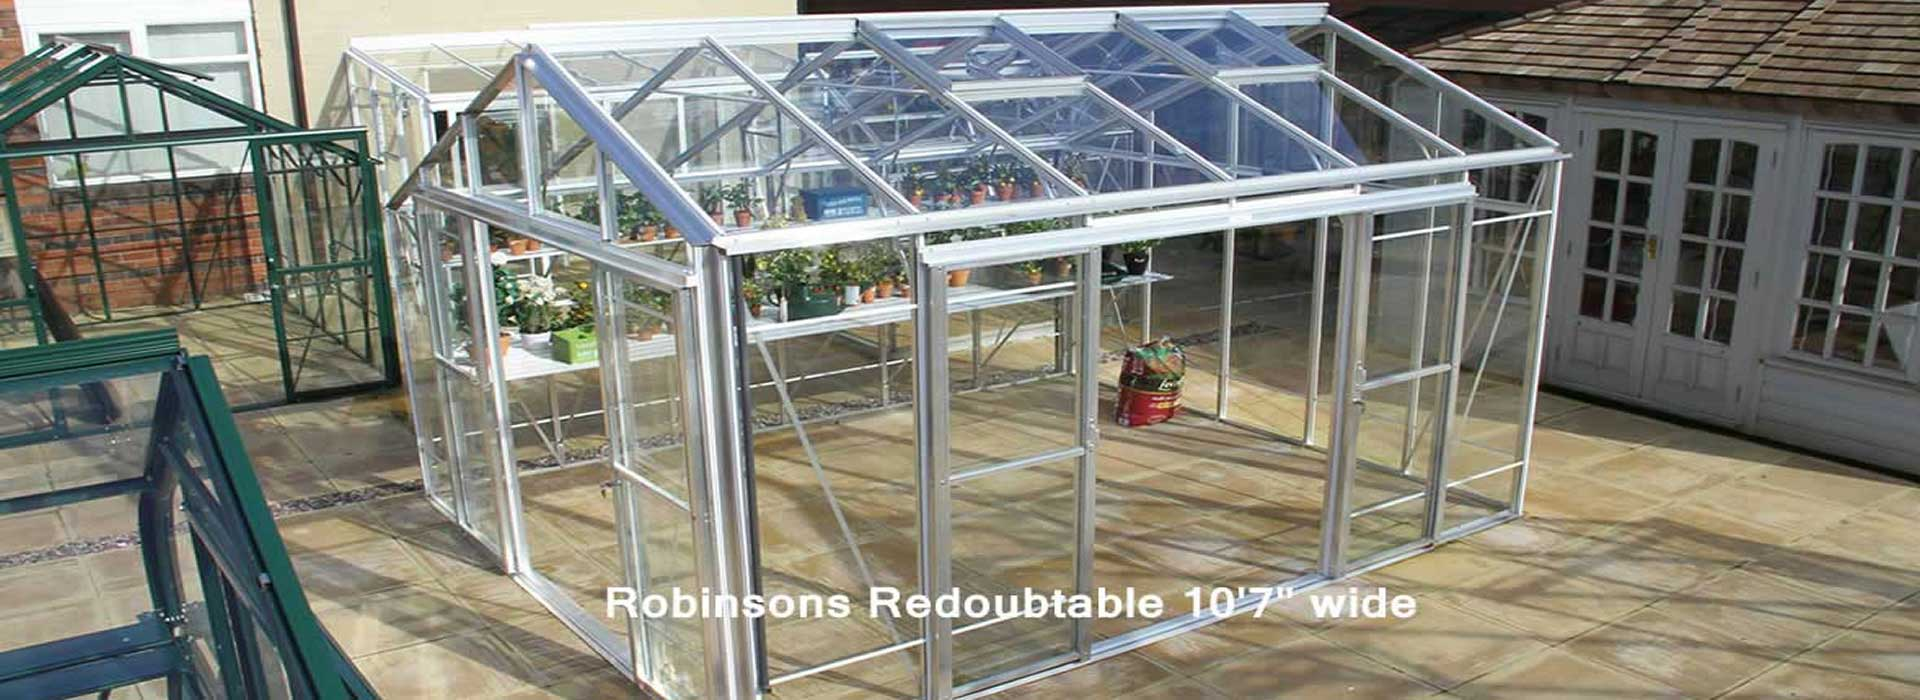 Robinsons Redoubtable Greenhouses